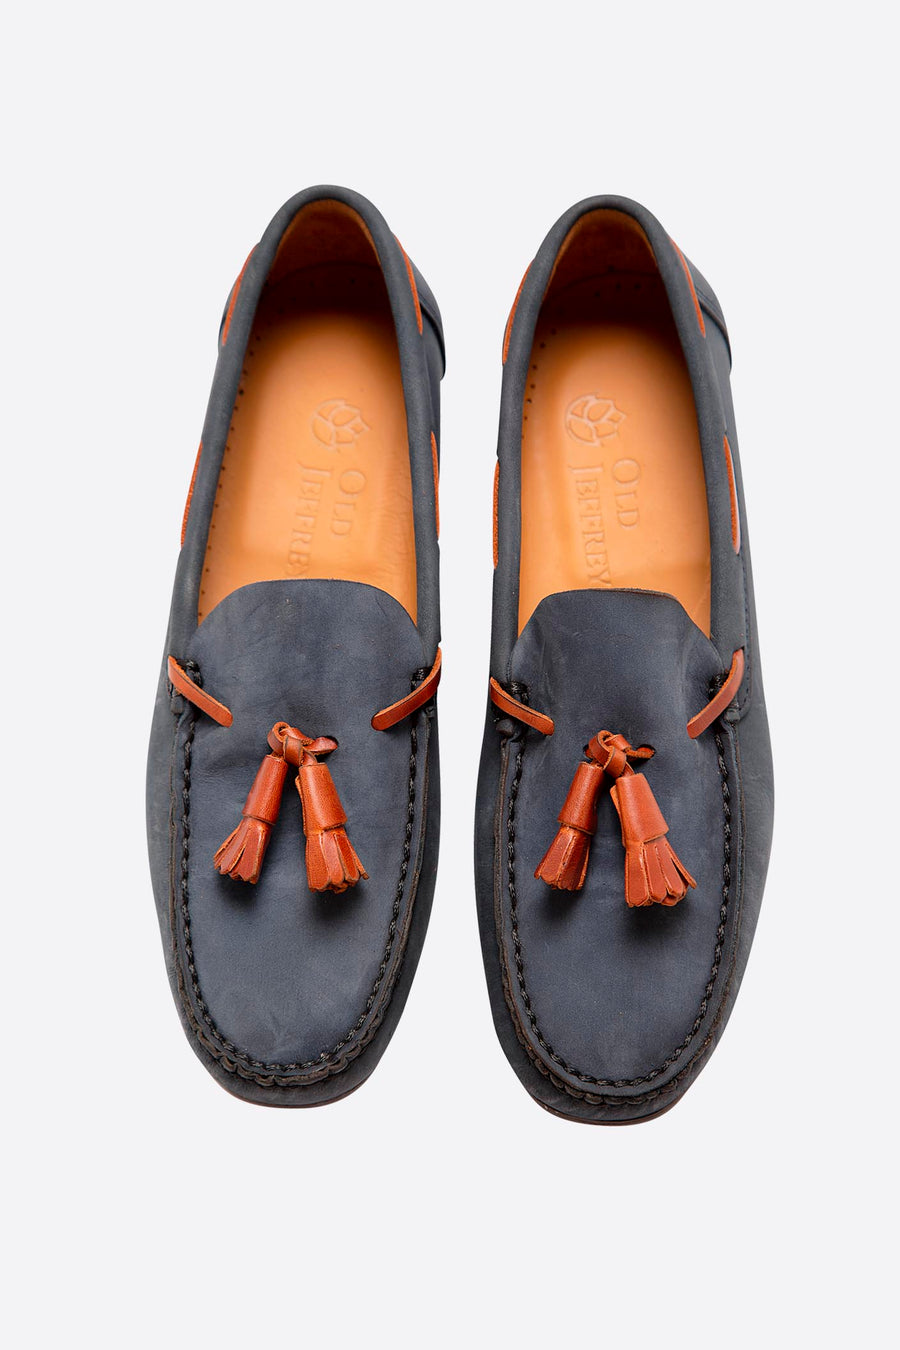 Blue Nubuck Moccasin with Fringes and Flexible Sole